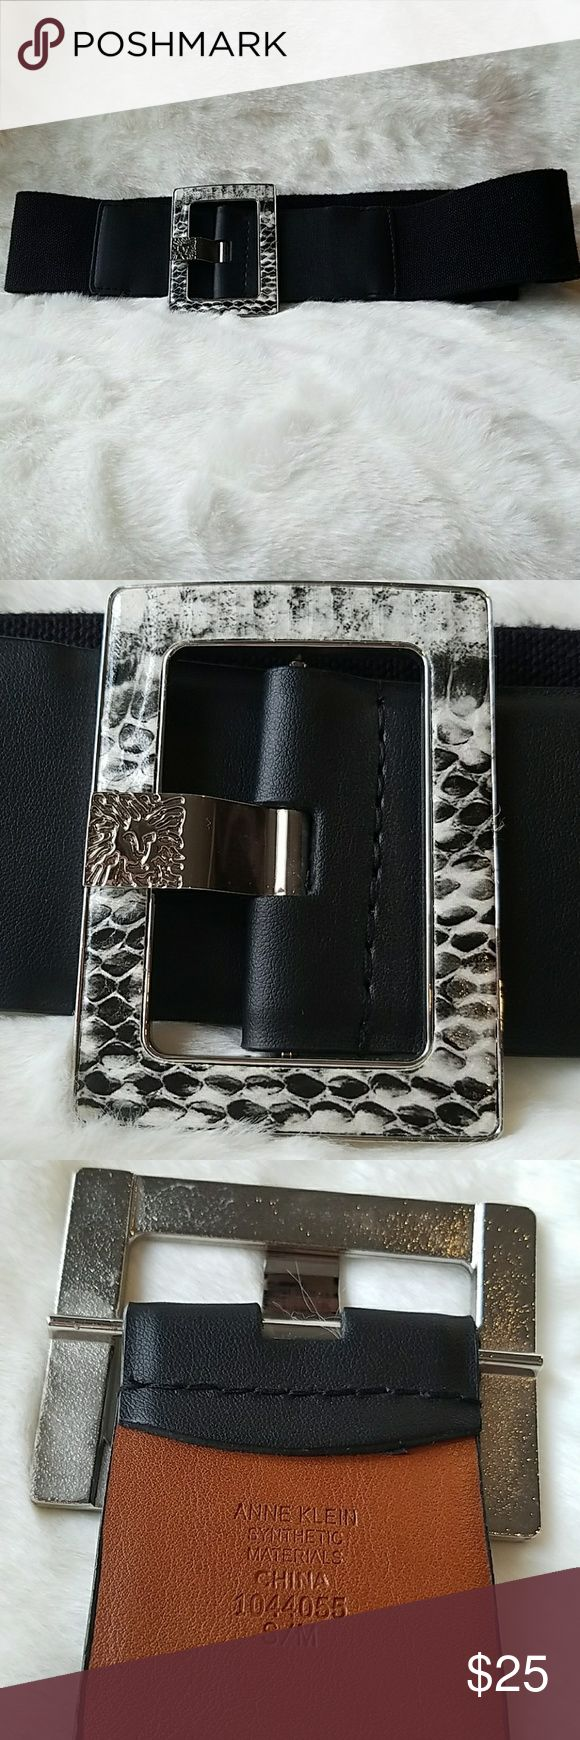 Anne Klein stretchy wide belt. Faux snake buckle. Anne Klein wide belt. Faux snake buckle. Stretchy back. Faux leather belt hole portion. Perfect for waist cinching with any dress, especially shift dresses and with tunics. Black. Excellent condition. Size S/M Anne Klein Accessories Belts